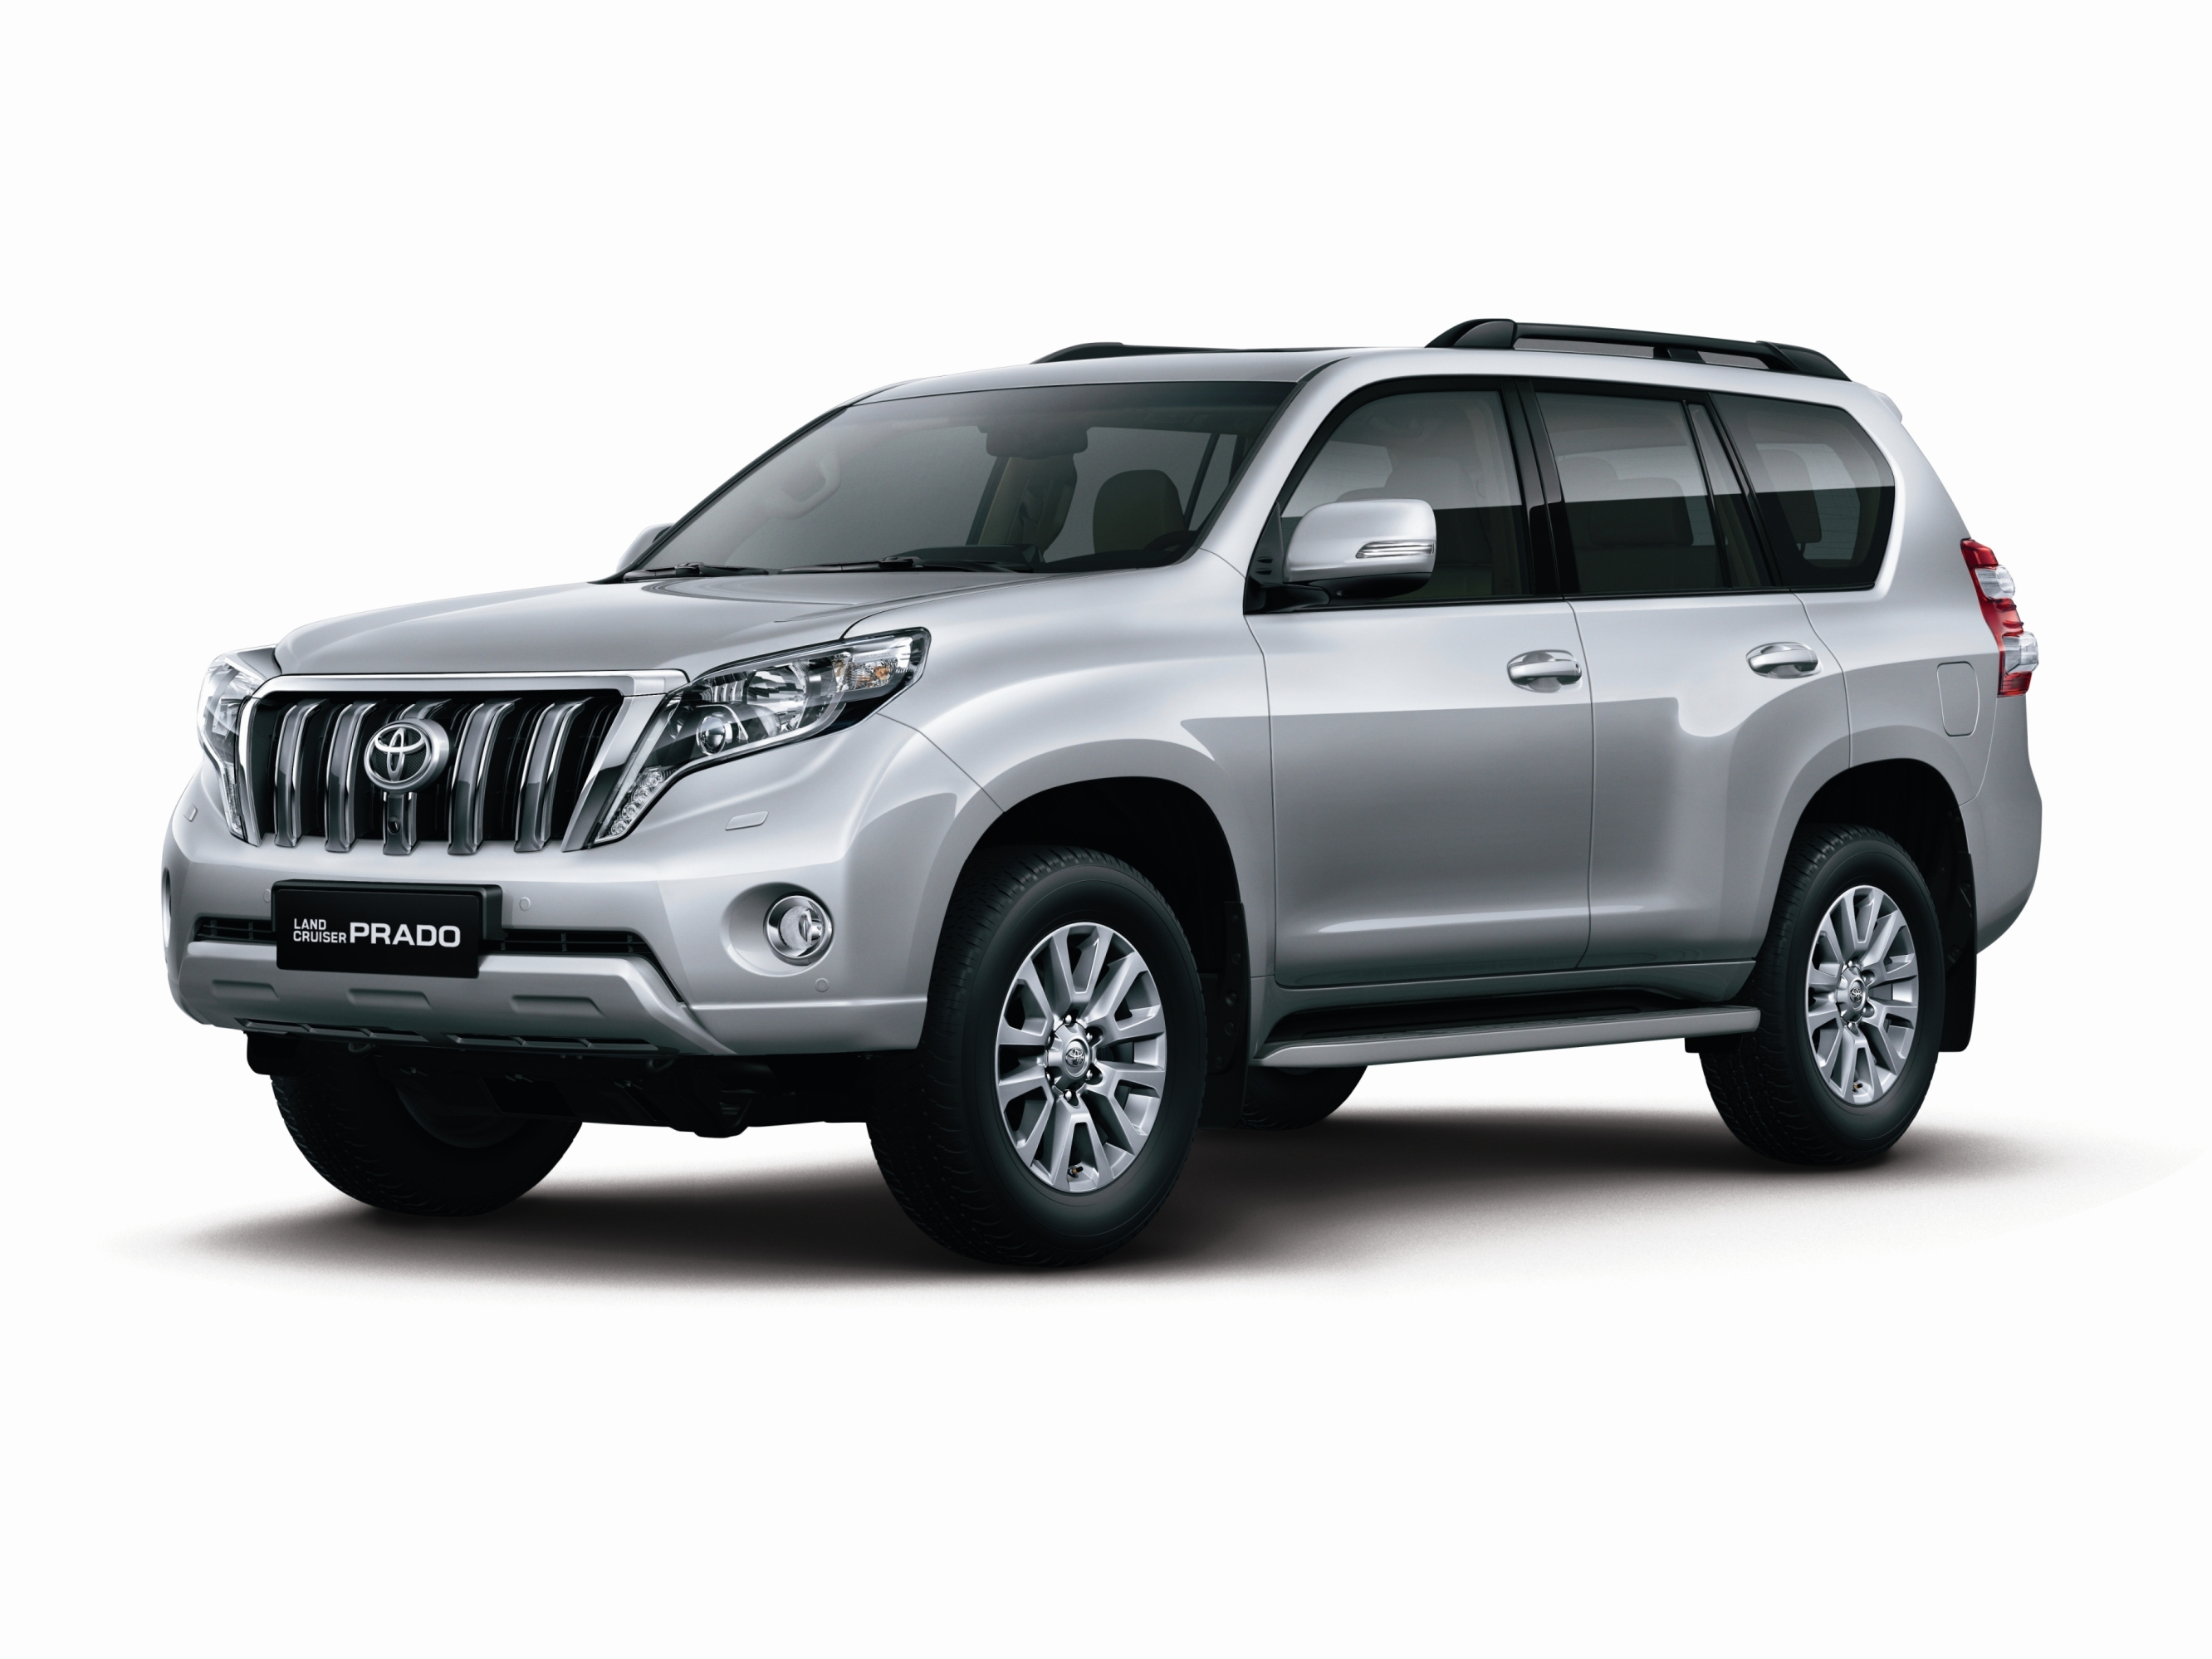 Toyota Land Cruiser Prado 2014 STD